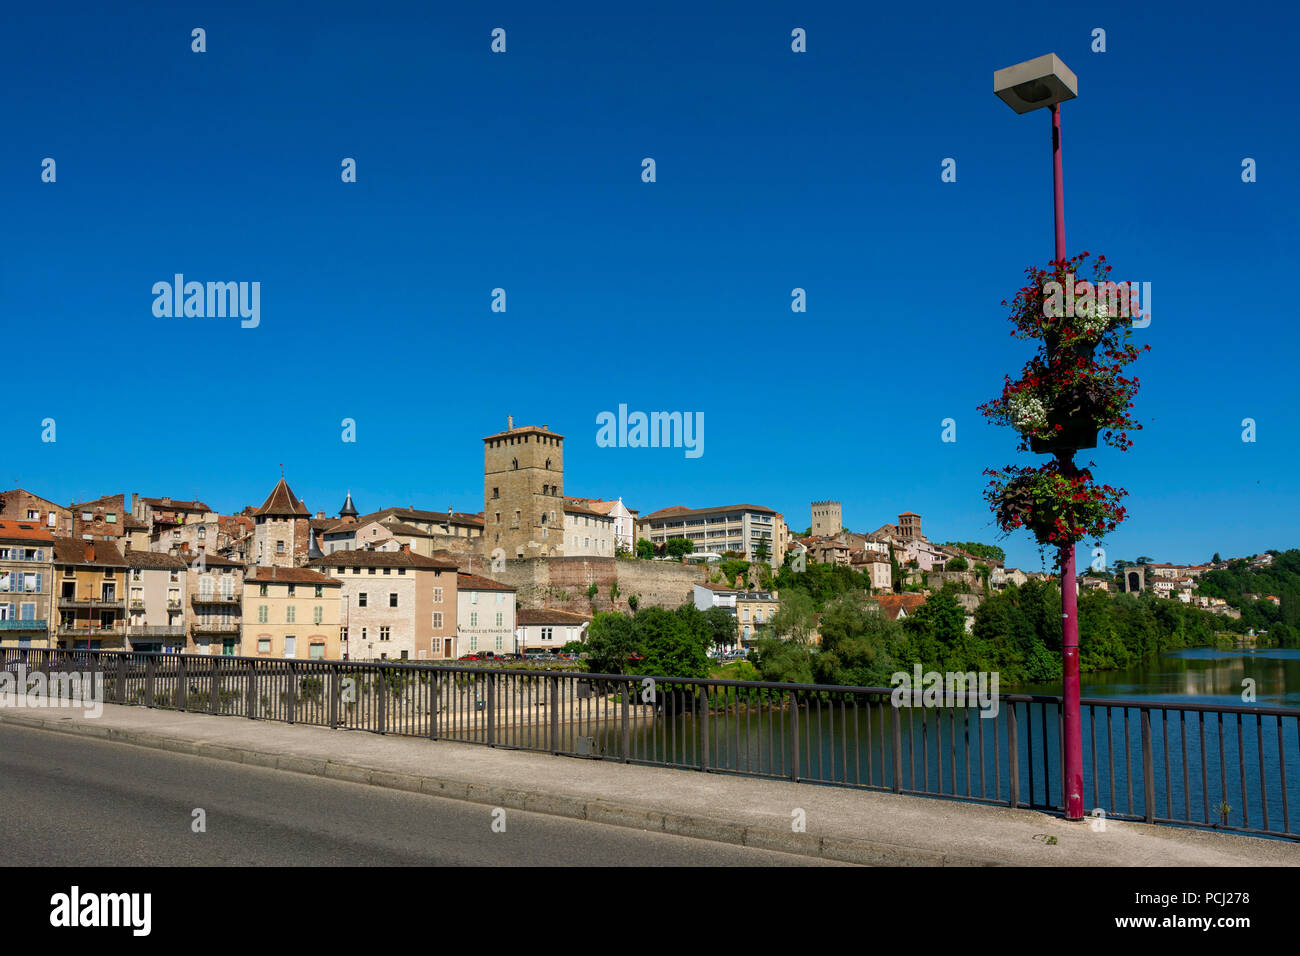 City of Cahors and river Lot, Lot department, Occitanie, France Stock Photo